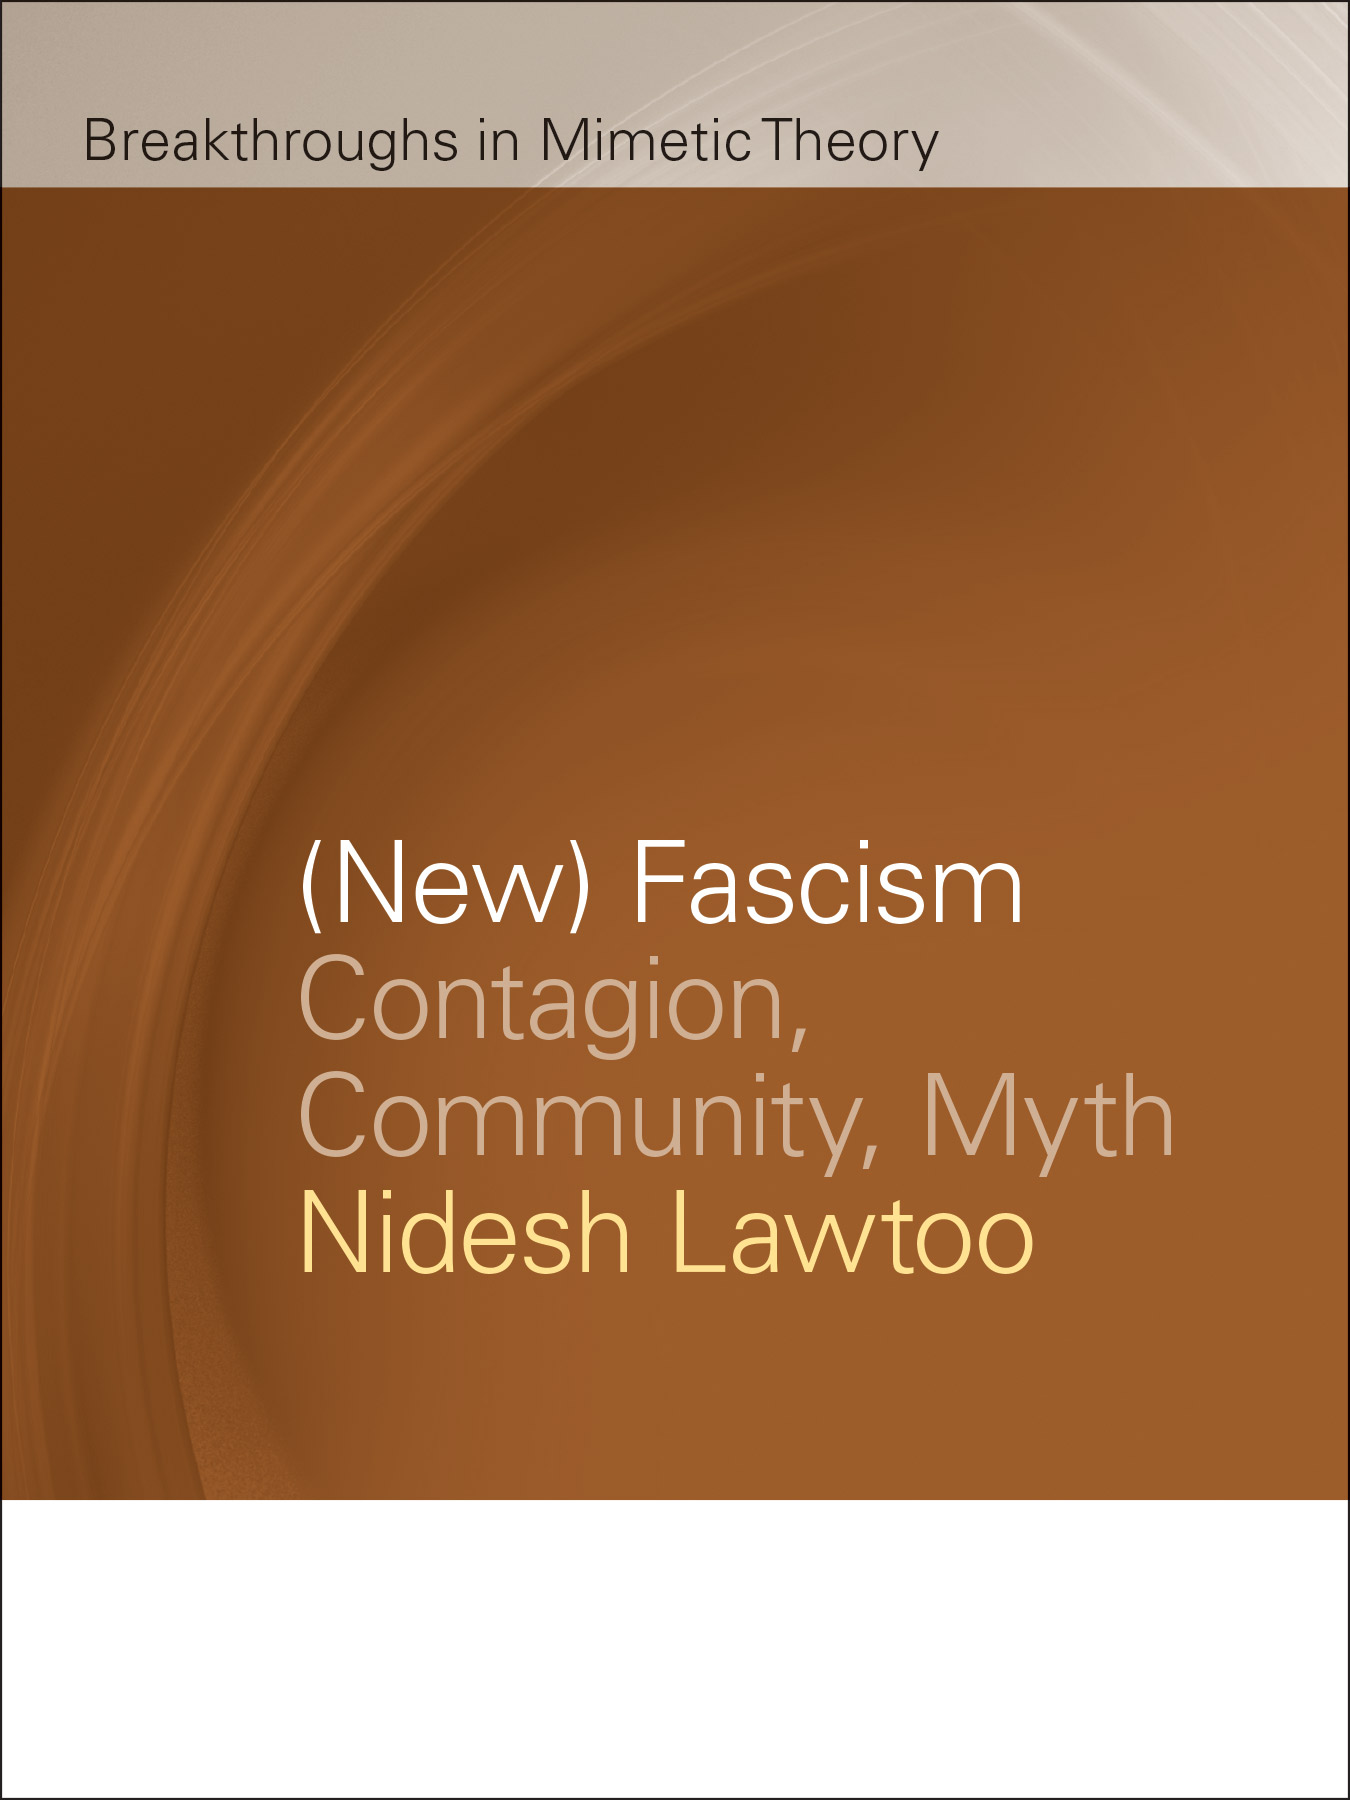 (New) Fascism cover